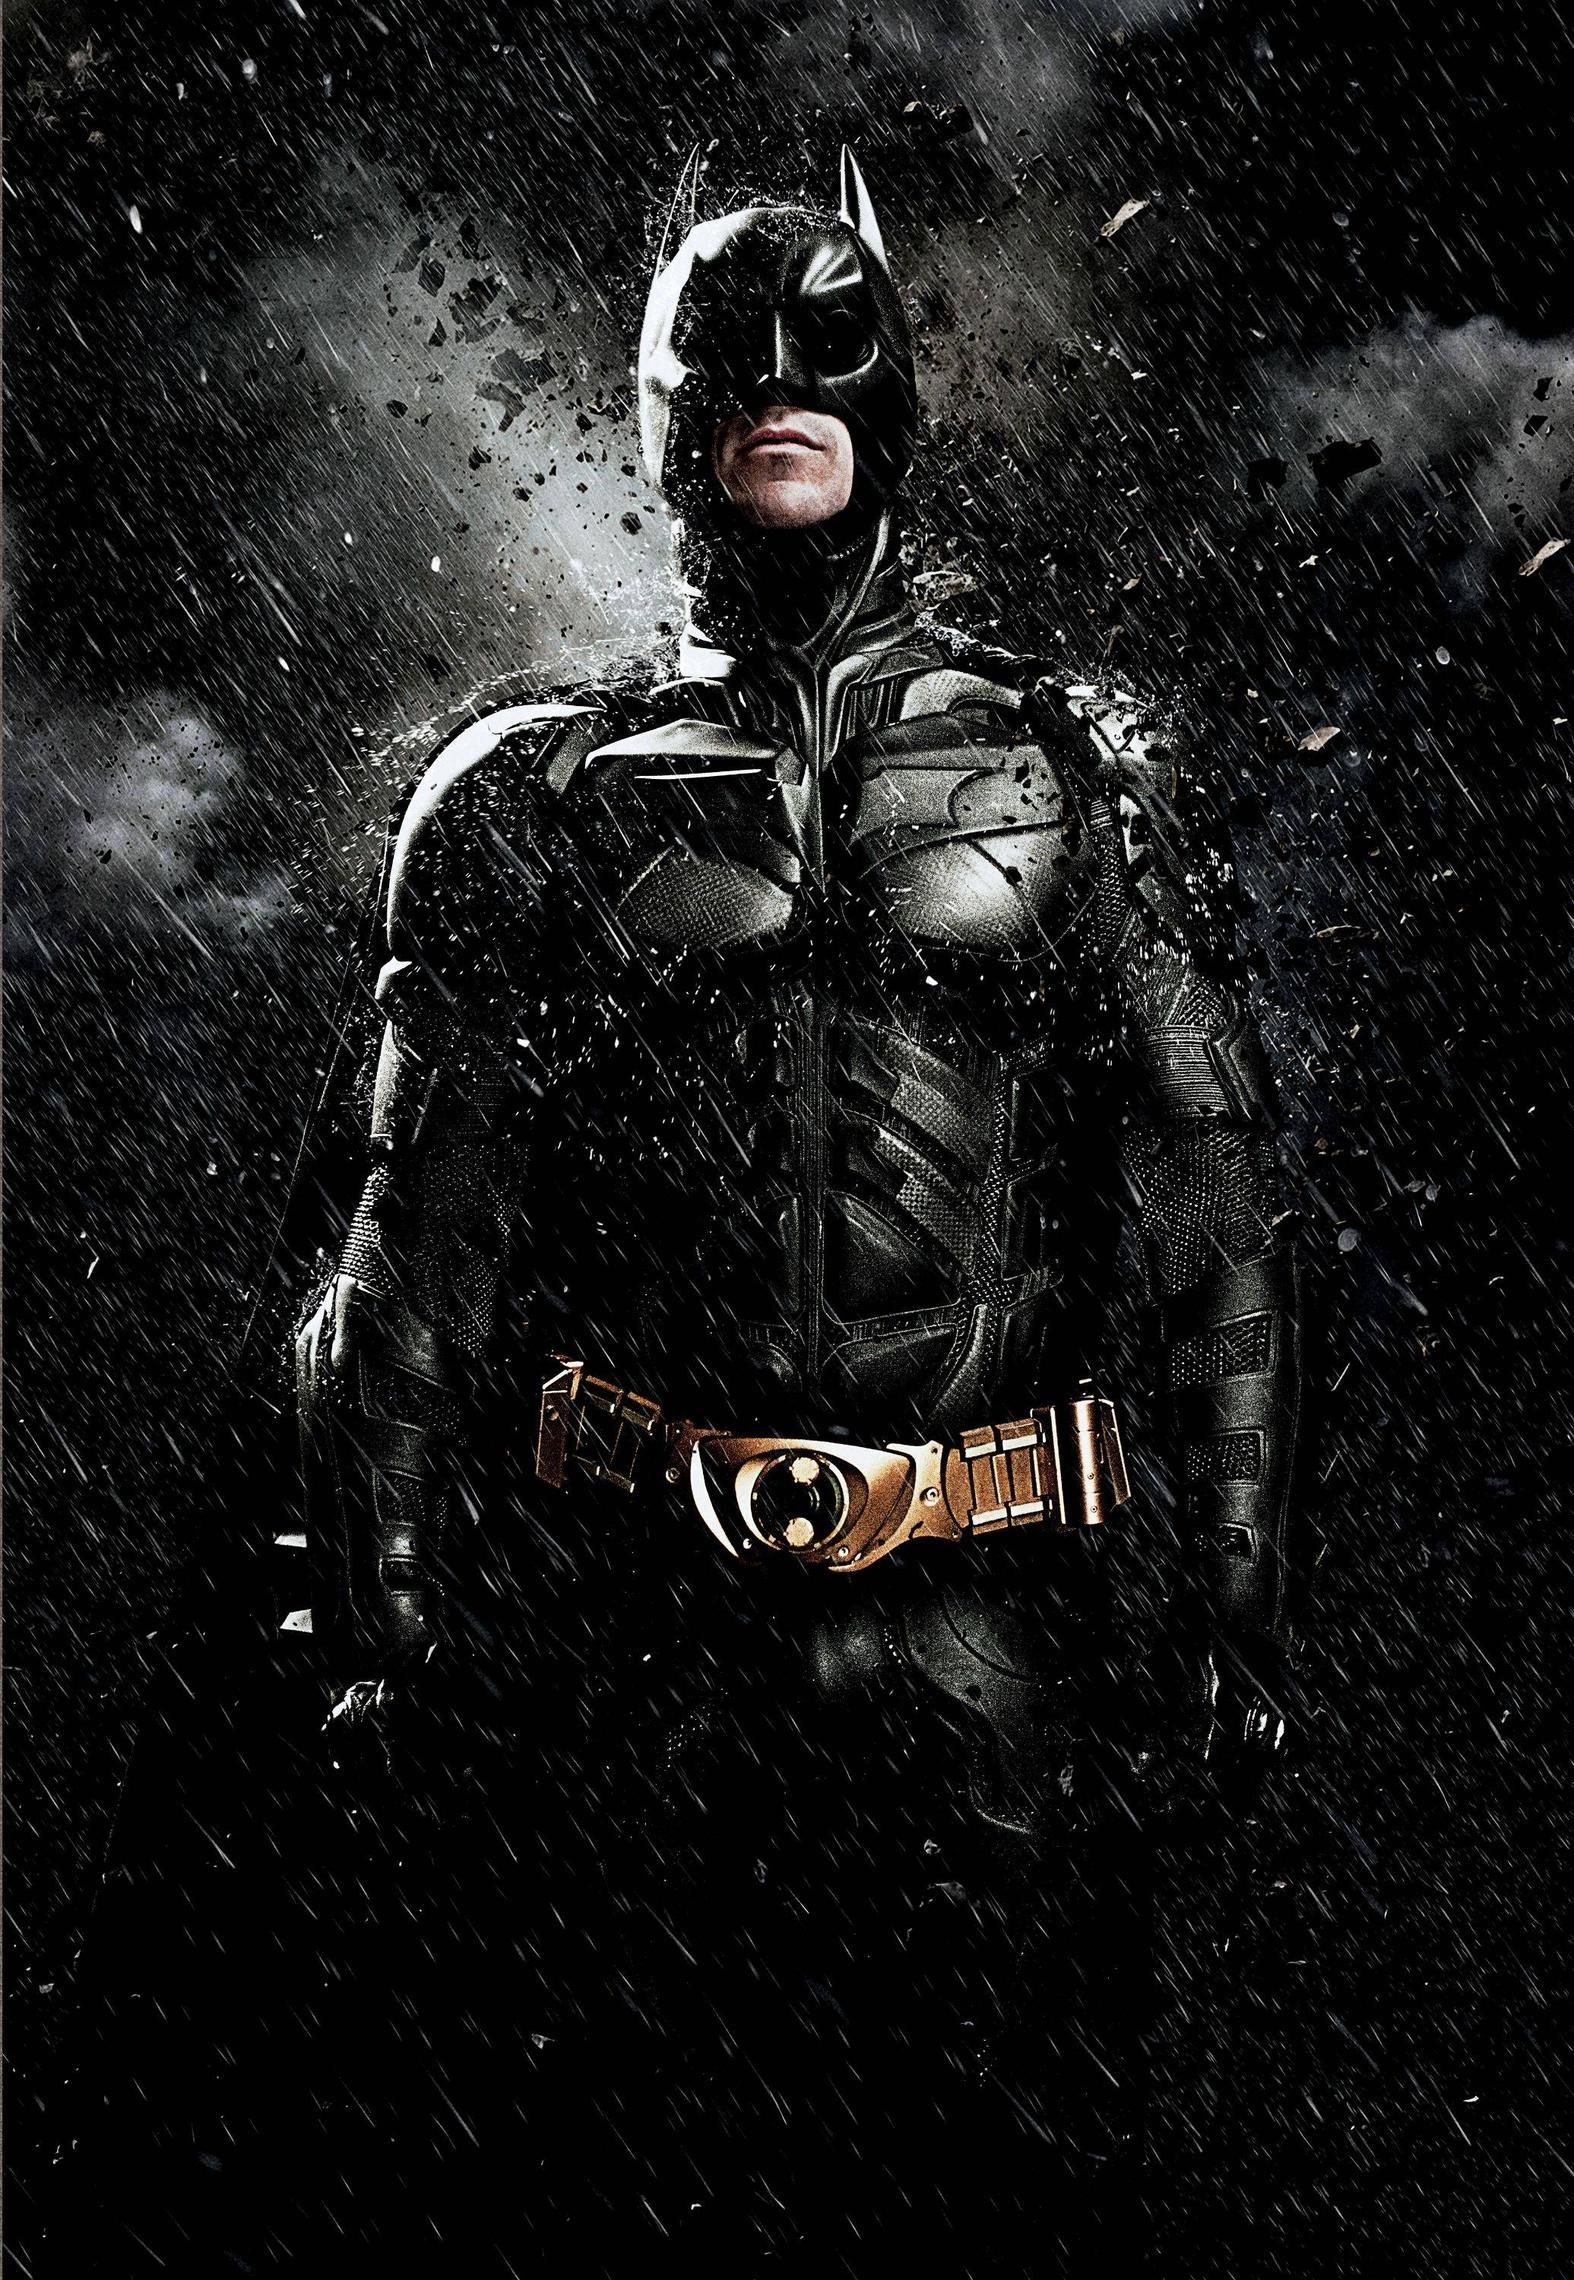 THE DARK KNIGHT RISES Textless Posters and Banners News